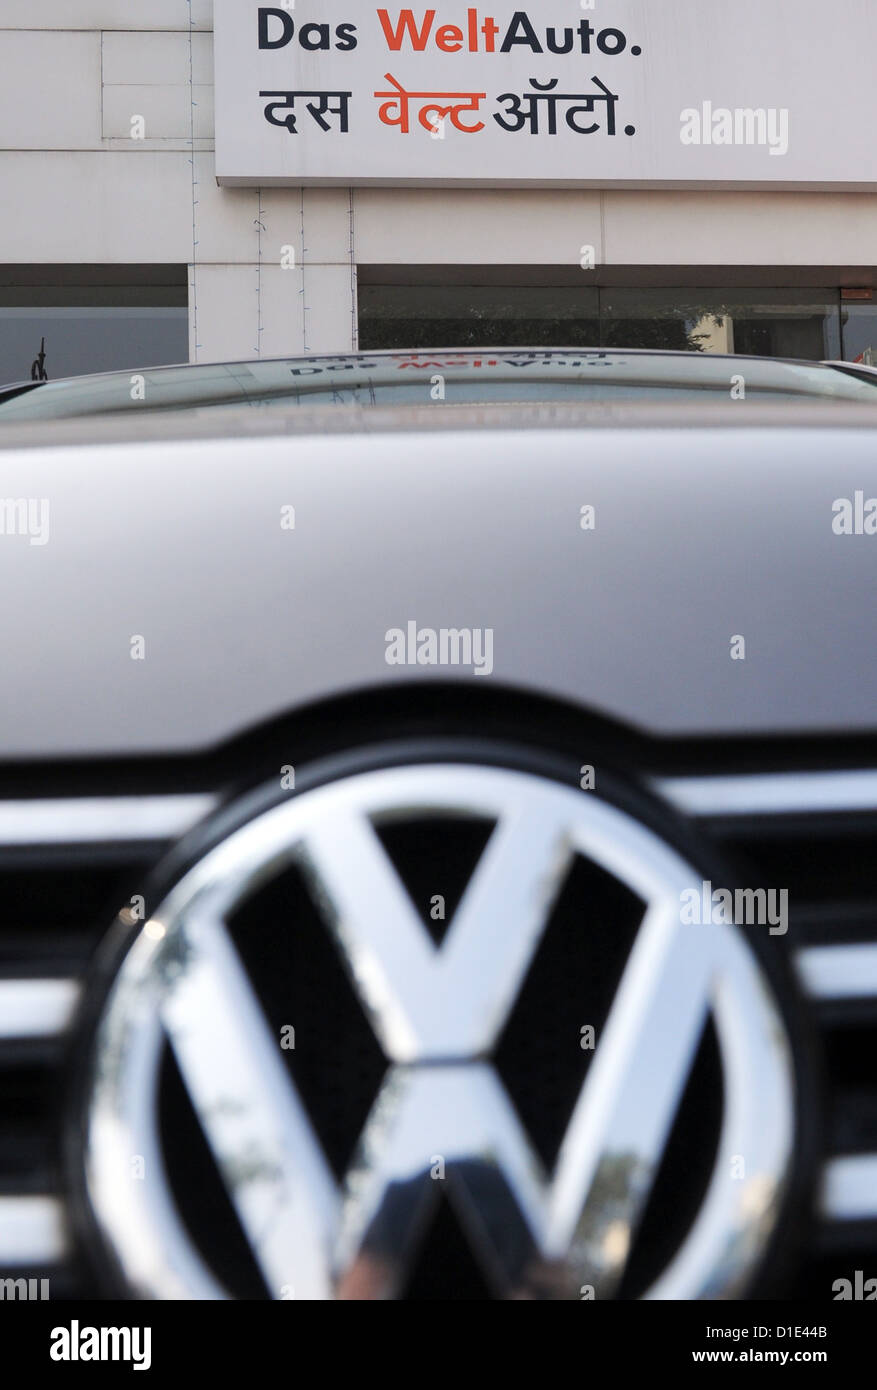 A Vw Passat Is Parked In Front Of A Vw Car Dealership In Jaipur